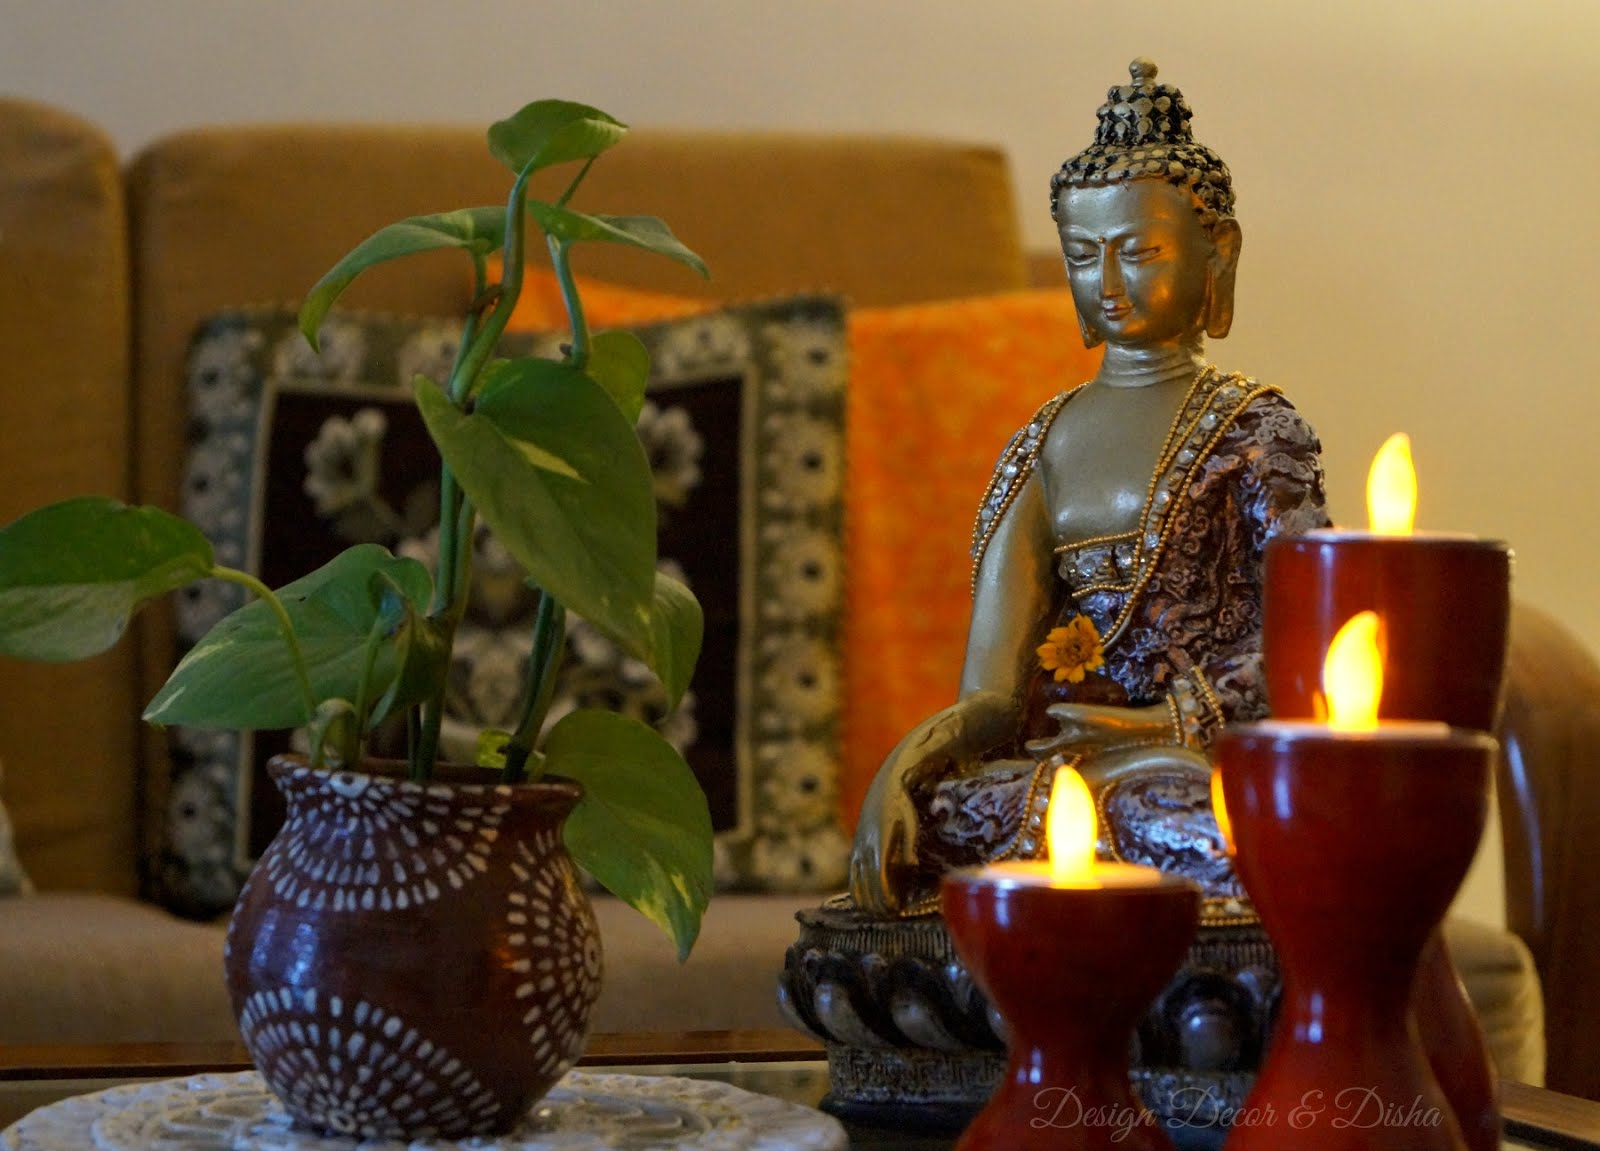 Design Decor Disha Buddha Decor Ideas